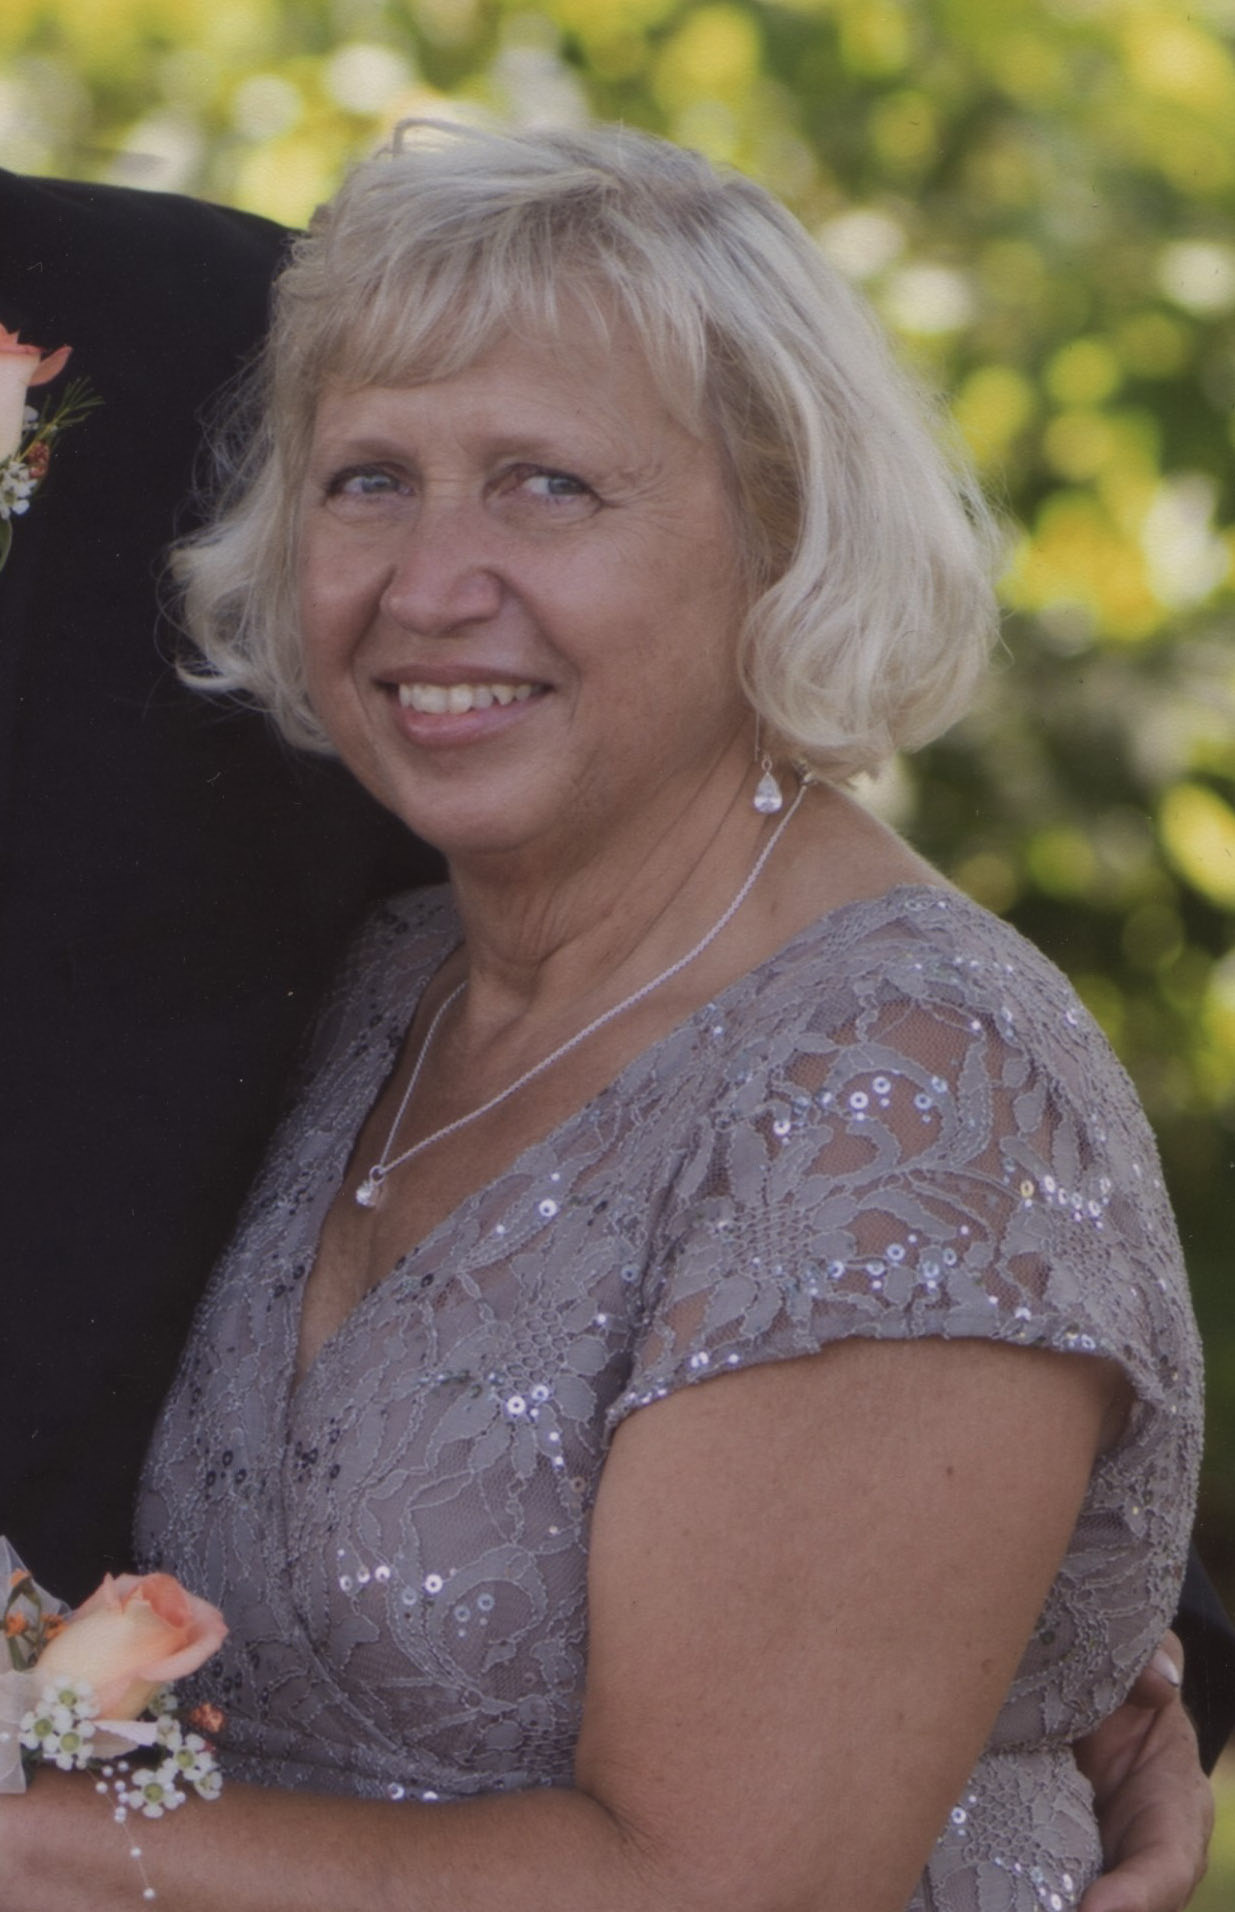 Donna Sue Sattler, age 61, of Holland